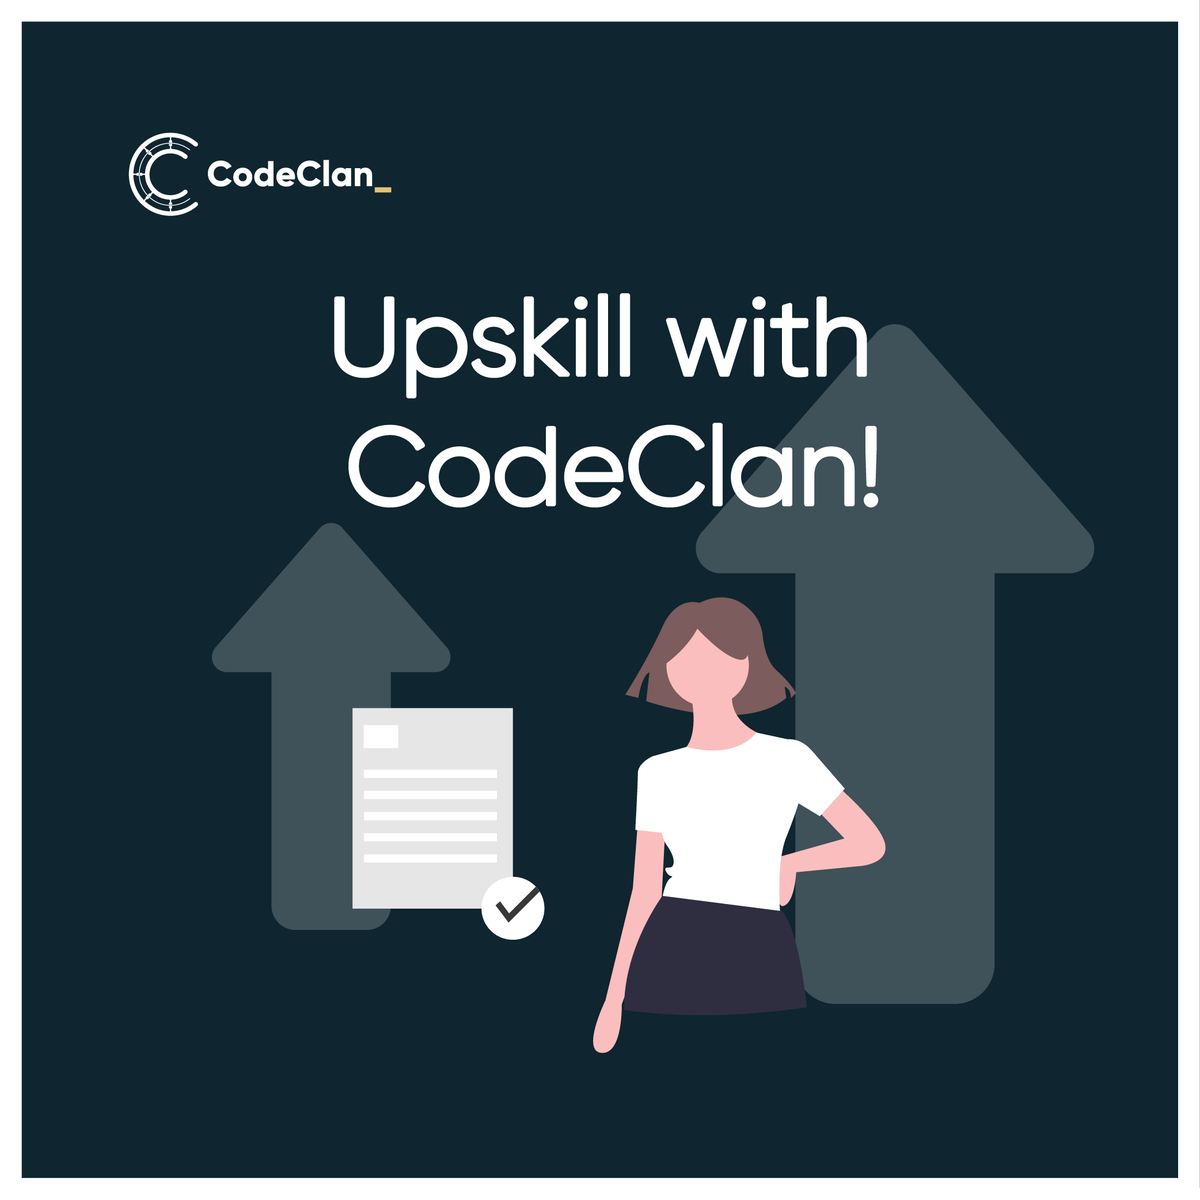 Codeclan On Twitter Design And Market Digital Products Your Customers Will Love During Our Three Day Ux Design Fundamentals Course We Ll Work With You To Expand Your Skill Set And Help You Get